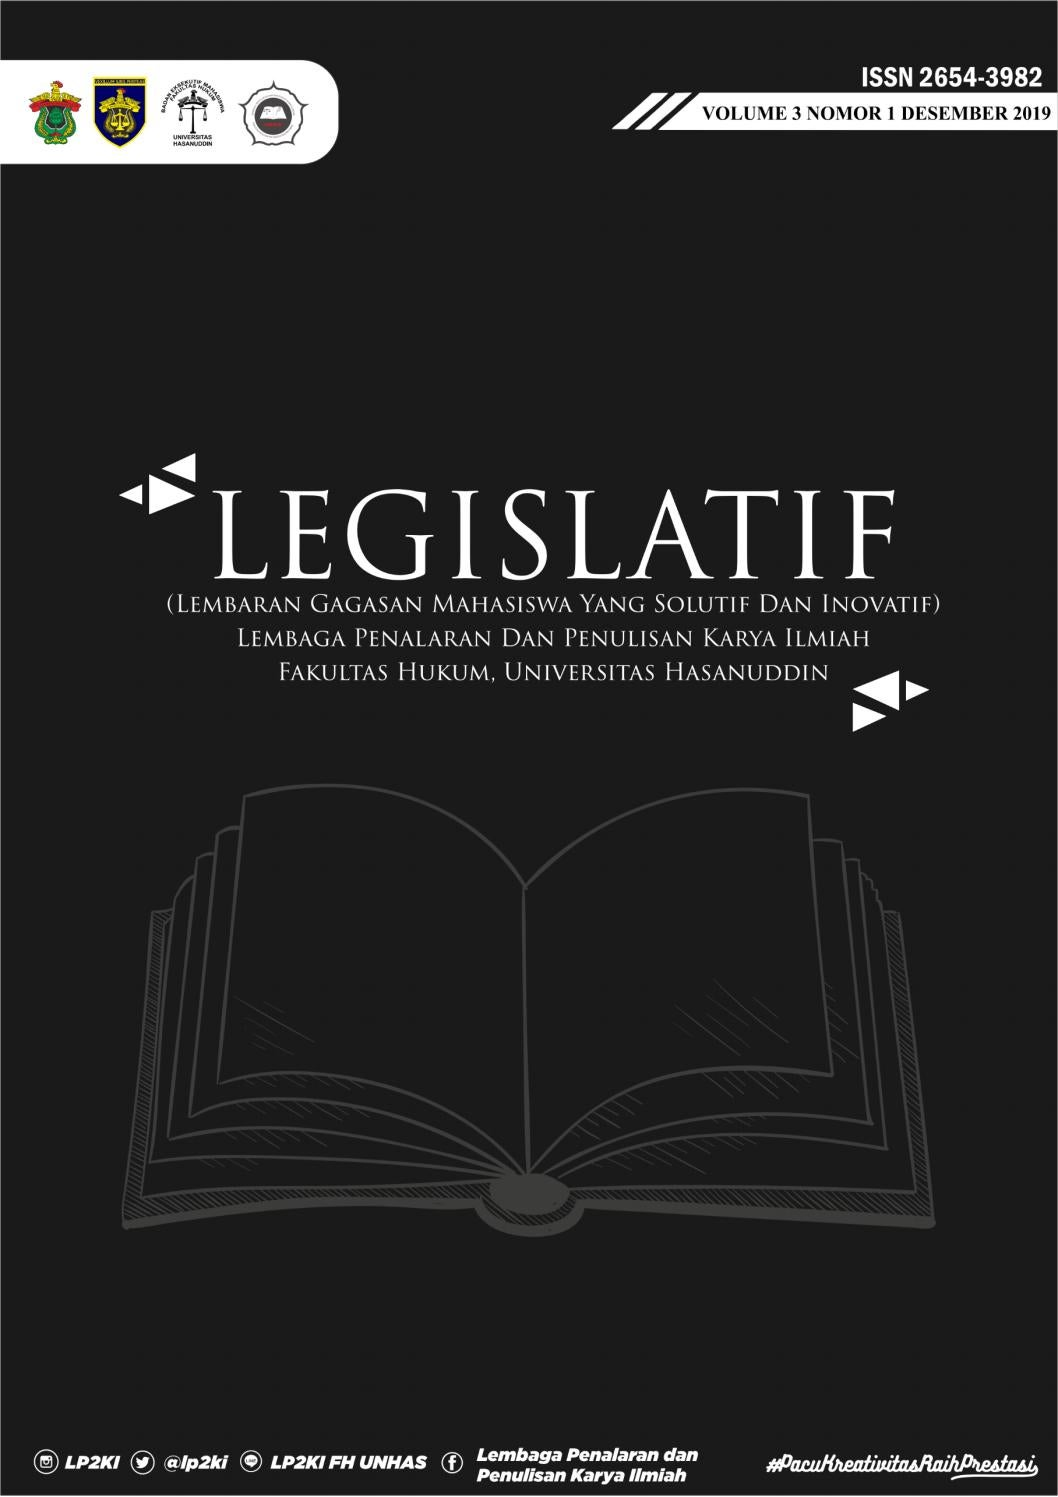 Jurnal Legislatif Volume 3 Nomor 1 Desember 2019 By Lp2ki Fh Uh